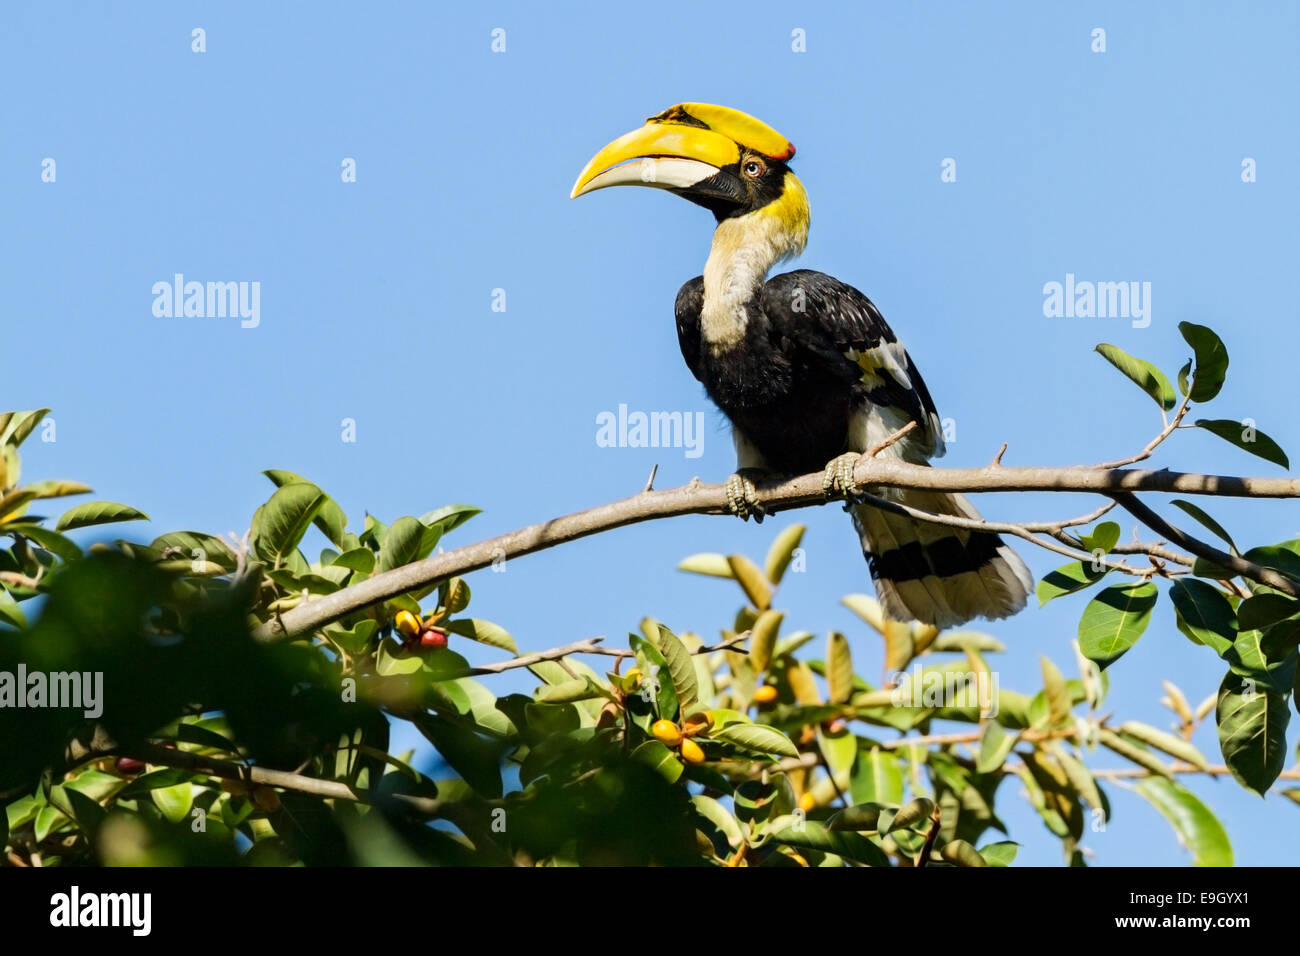 Adult female Great hornbill (Buceros bicornis) in tropical rainforest canopy - Stock Image